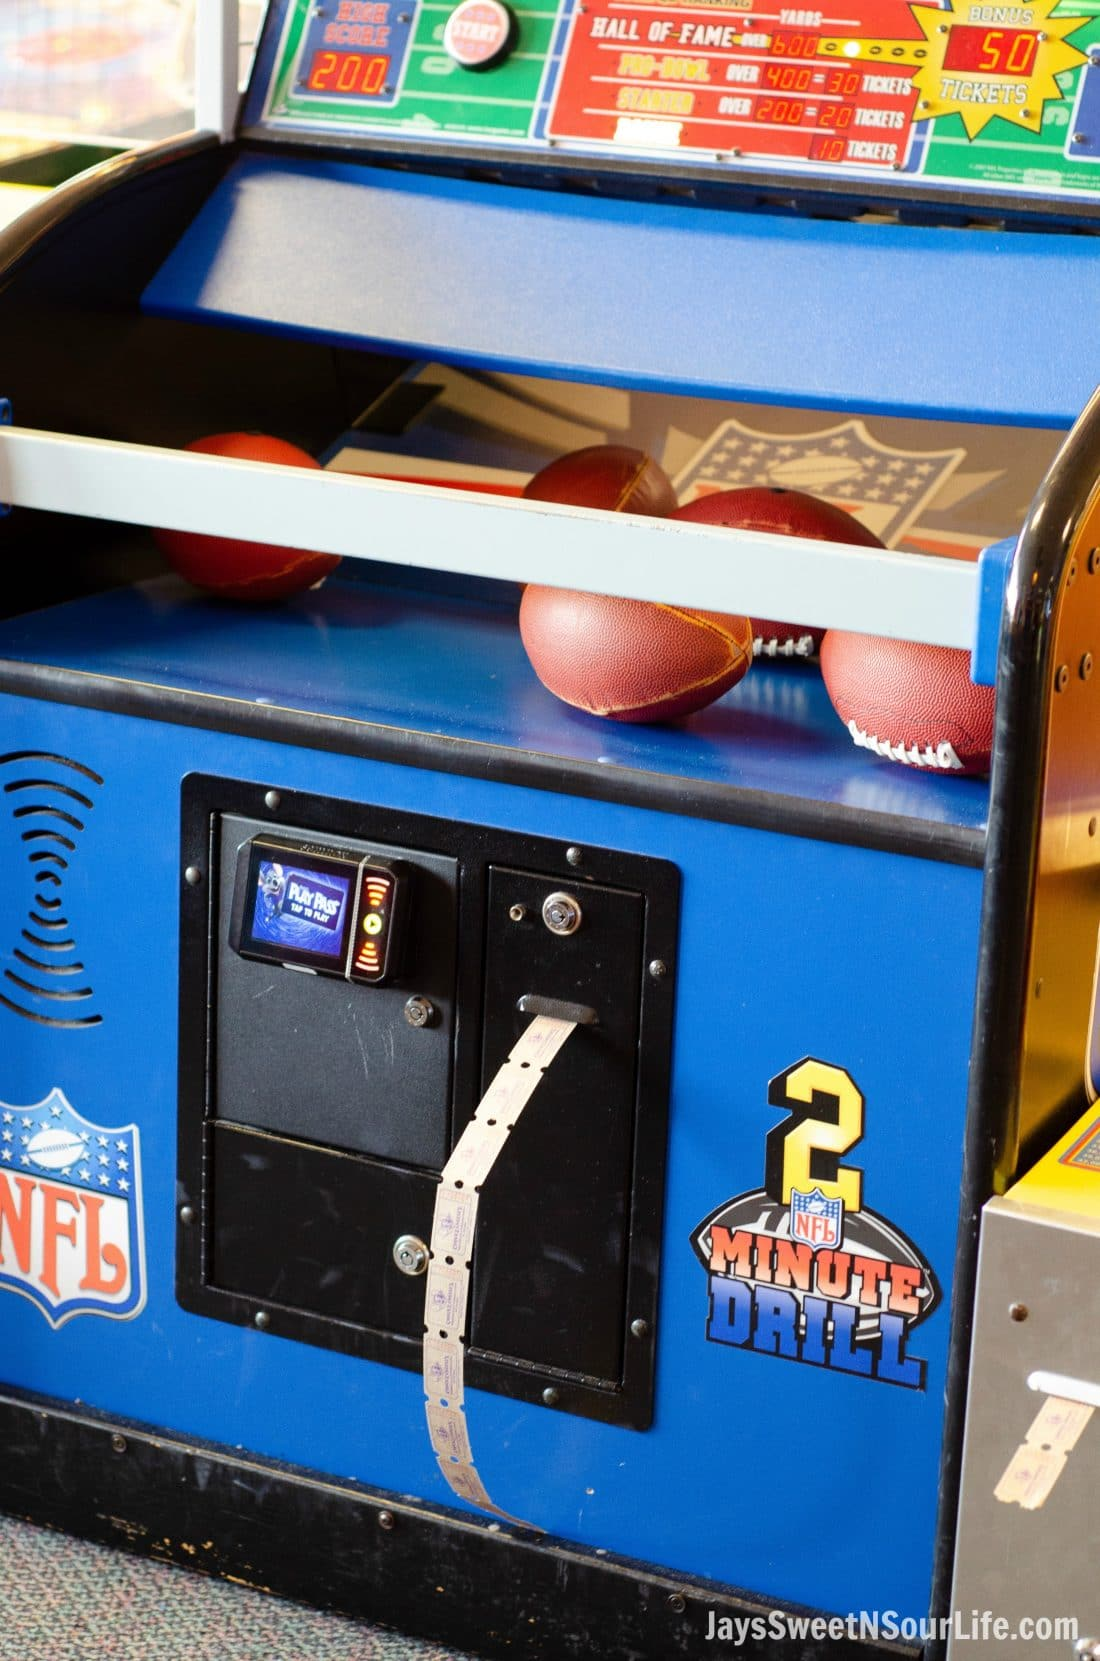 Chuck E. Cheese's games give out tickets which you can claim for prizes. The football game offers users the opportunity to play to win tickets.